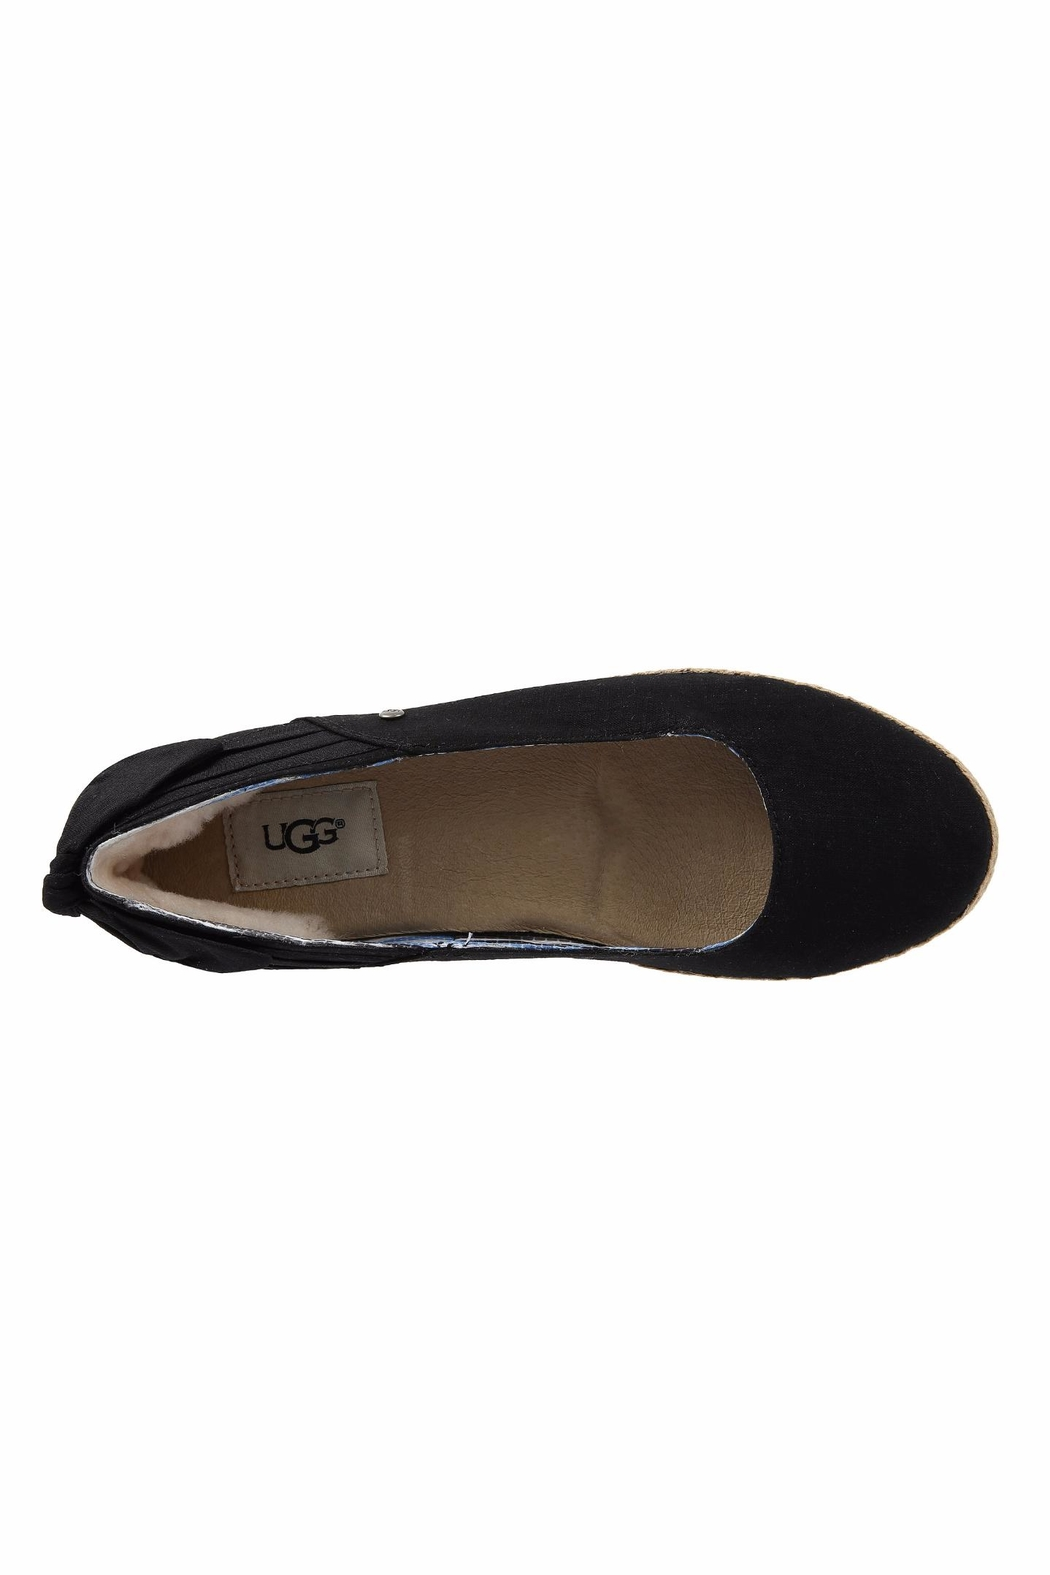 uggs flats womens shoes